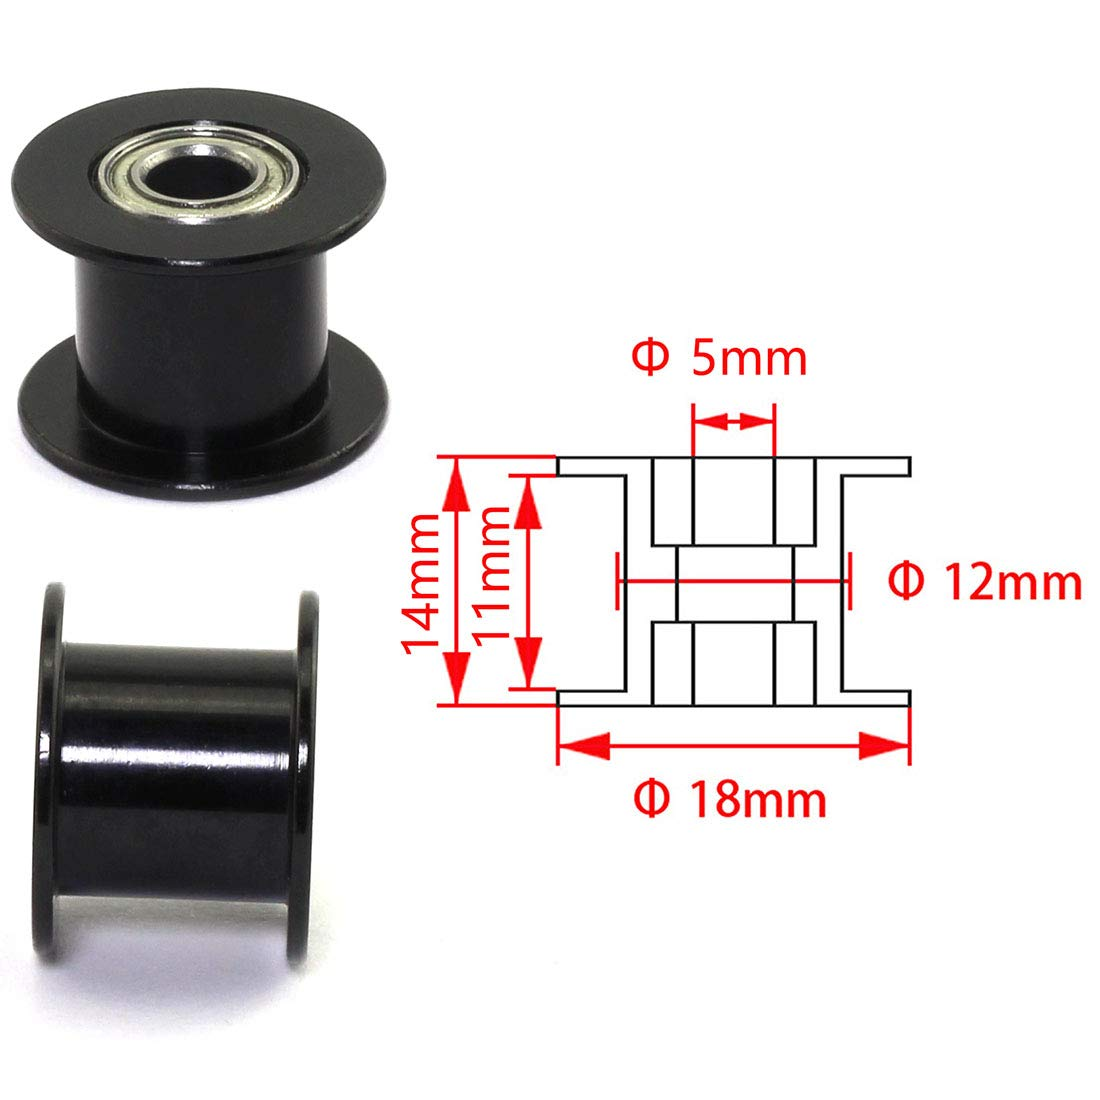 HJ Garden 2pcs 20 Teeth 5mm Bore Idler Timing Pulley with Bearing 2GT Aluminium Alloy H Type GT2 Synchronous Wheel Without Teeth for 10mm Width Belt 3D Printer CNC Mechanical Drive Black